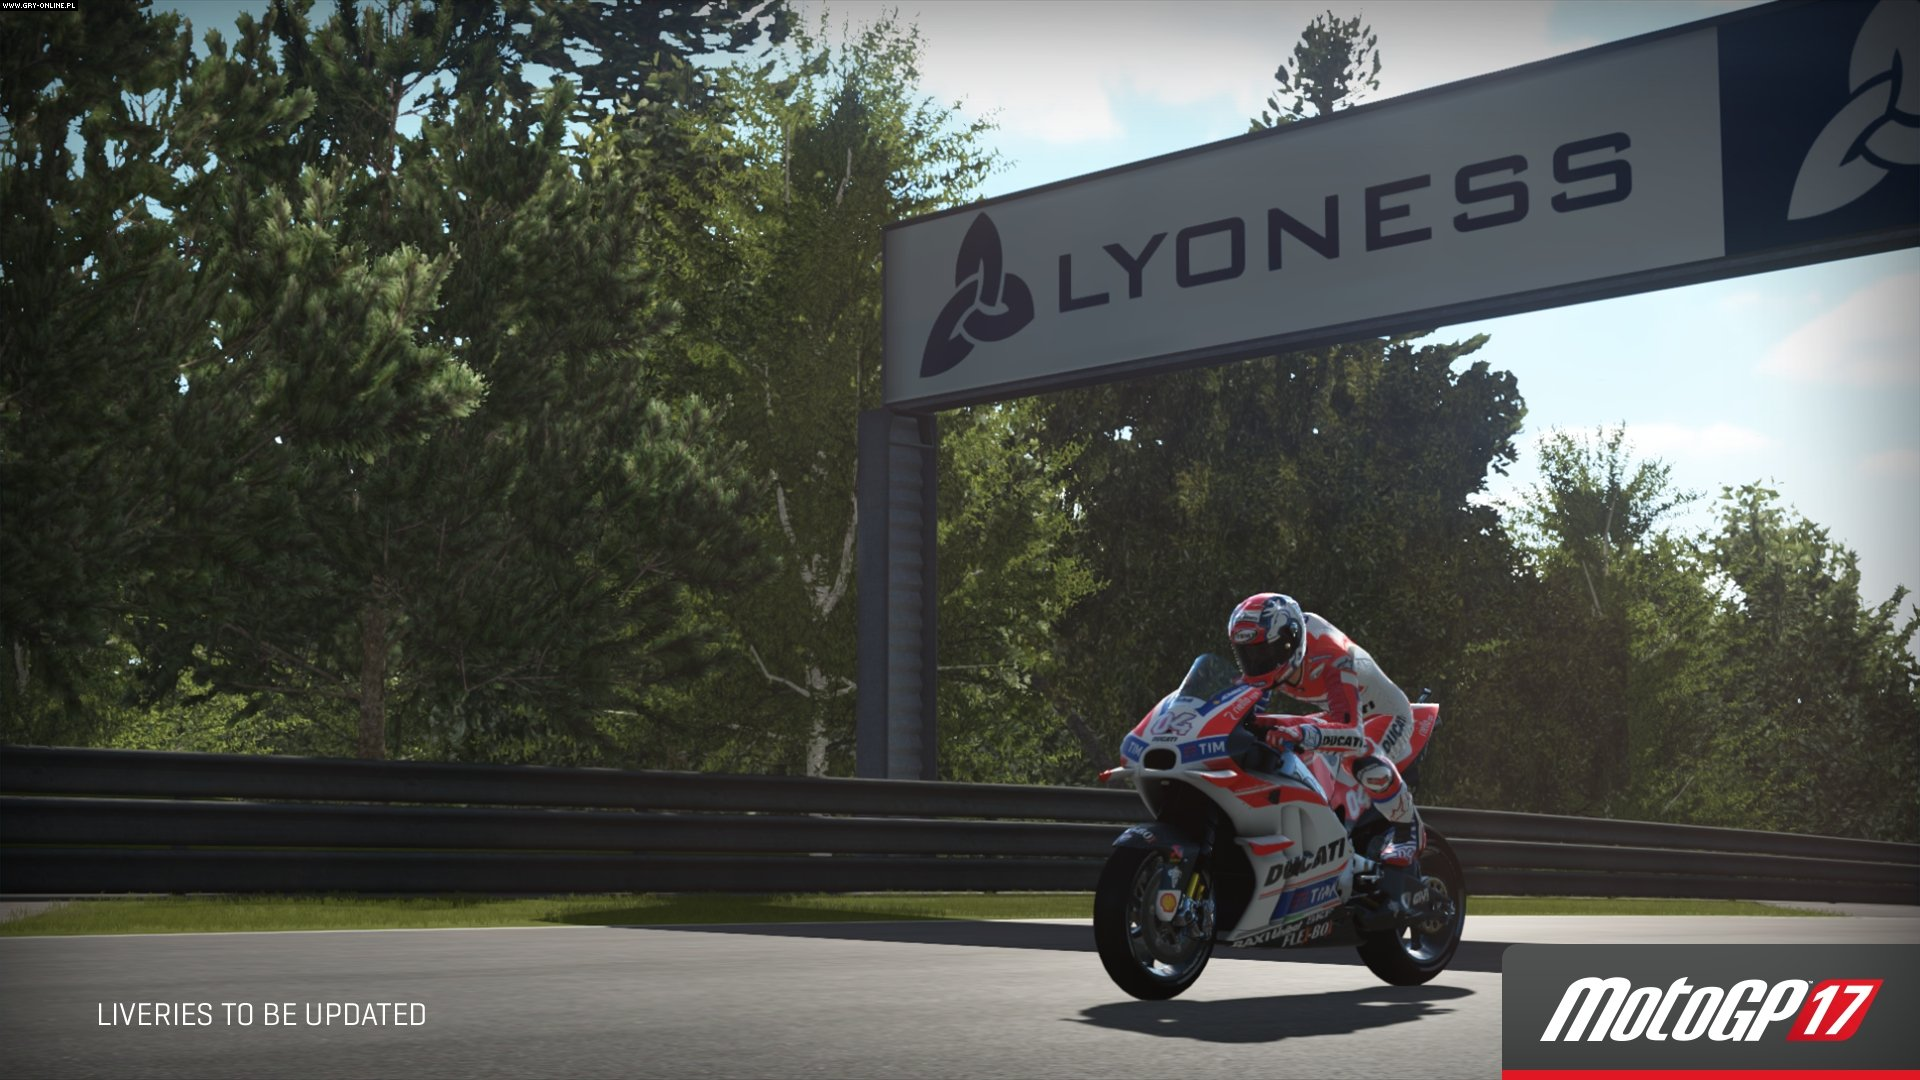 MotoGP 17 PC, PS4, XONE Gry Screen 66/71, Milestone